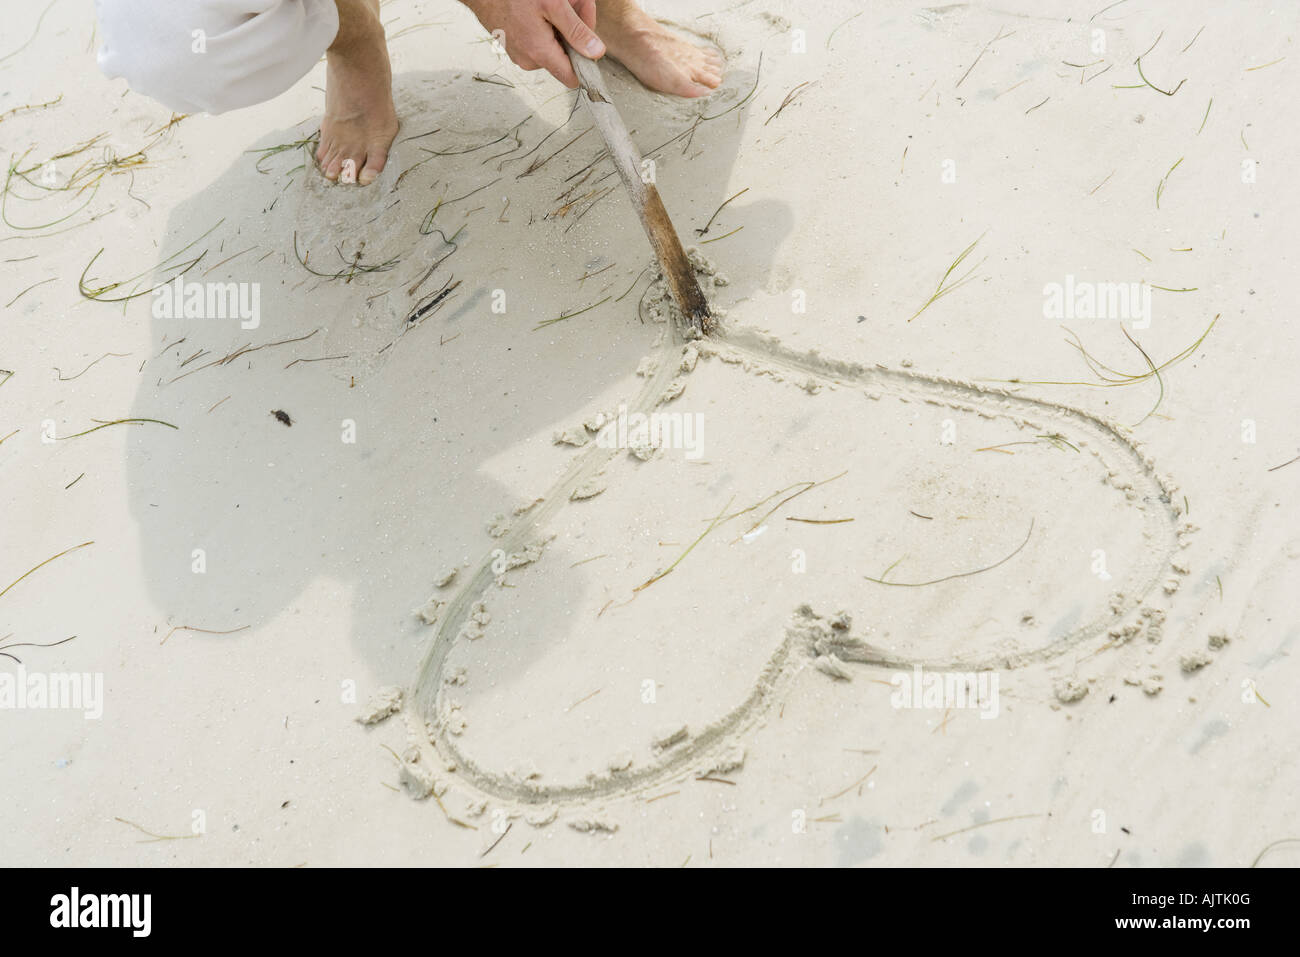 Man tracing heart in sand with stick, high angle view, cropped view - Stock Image